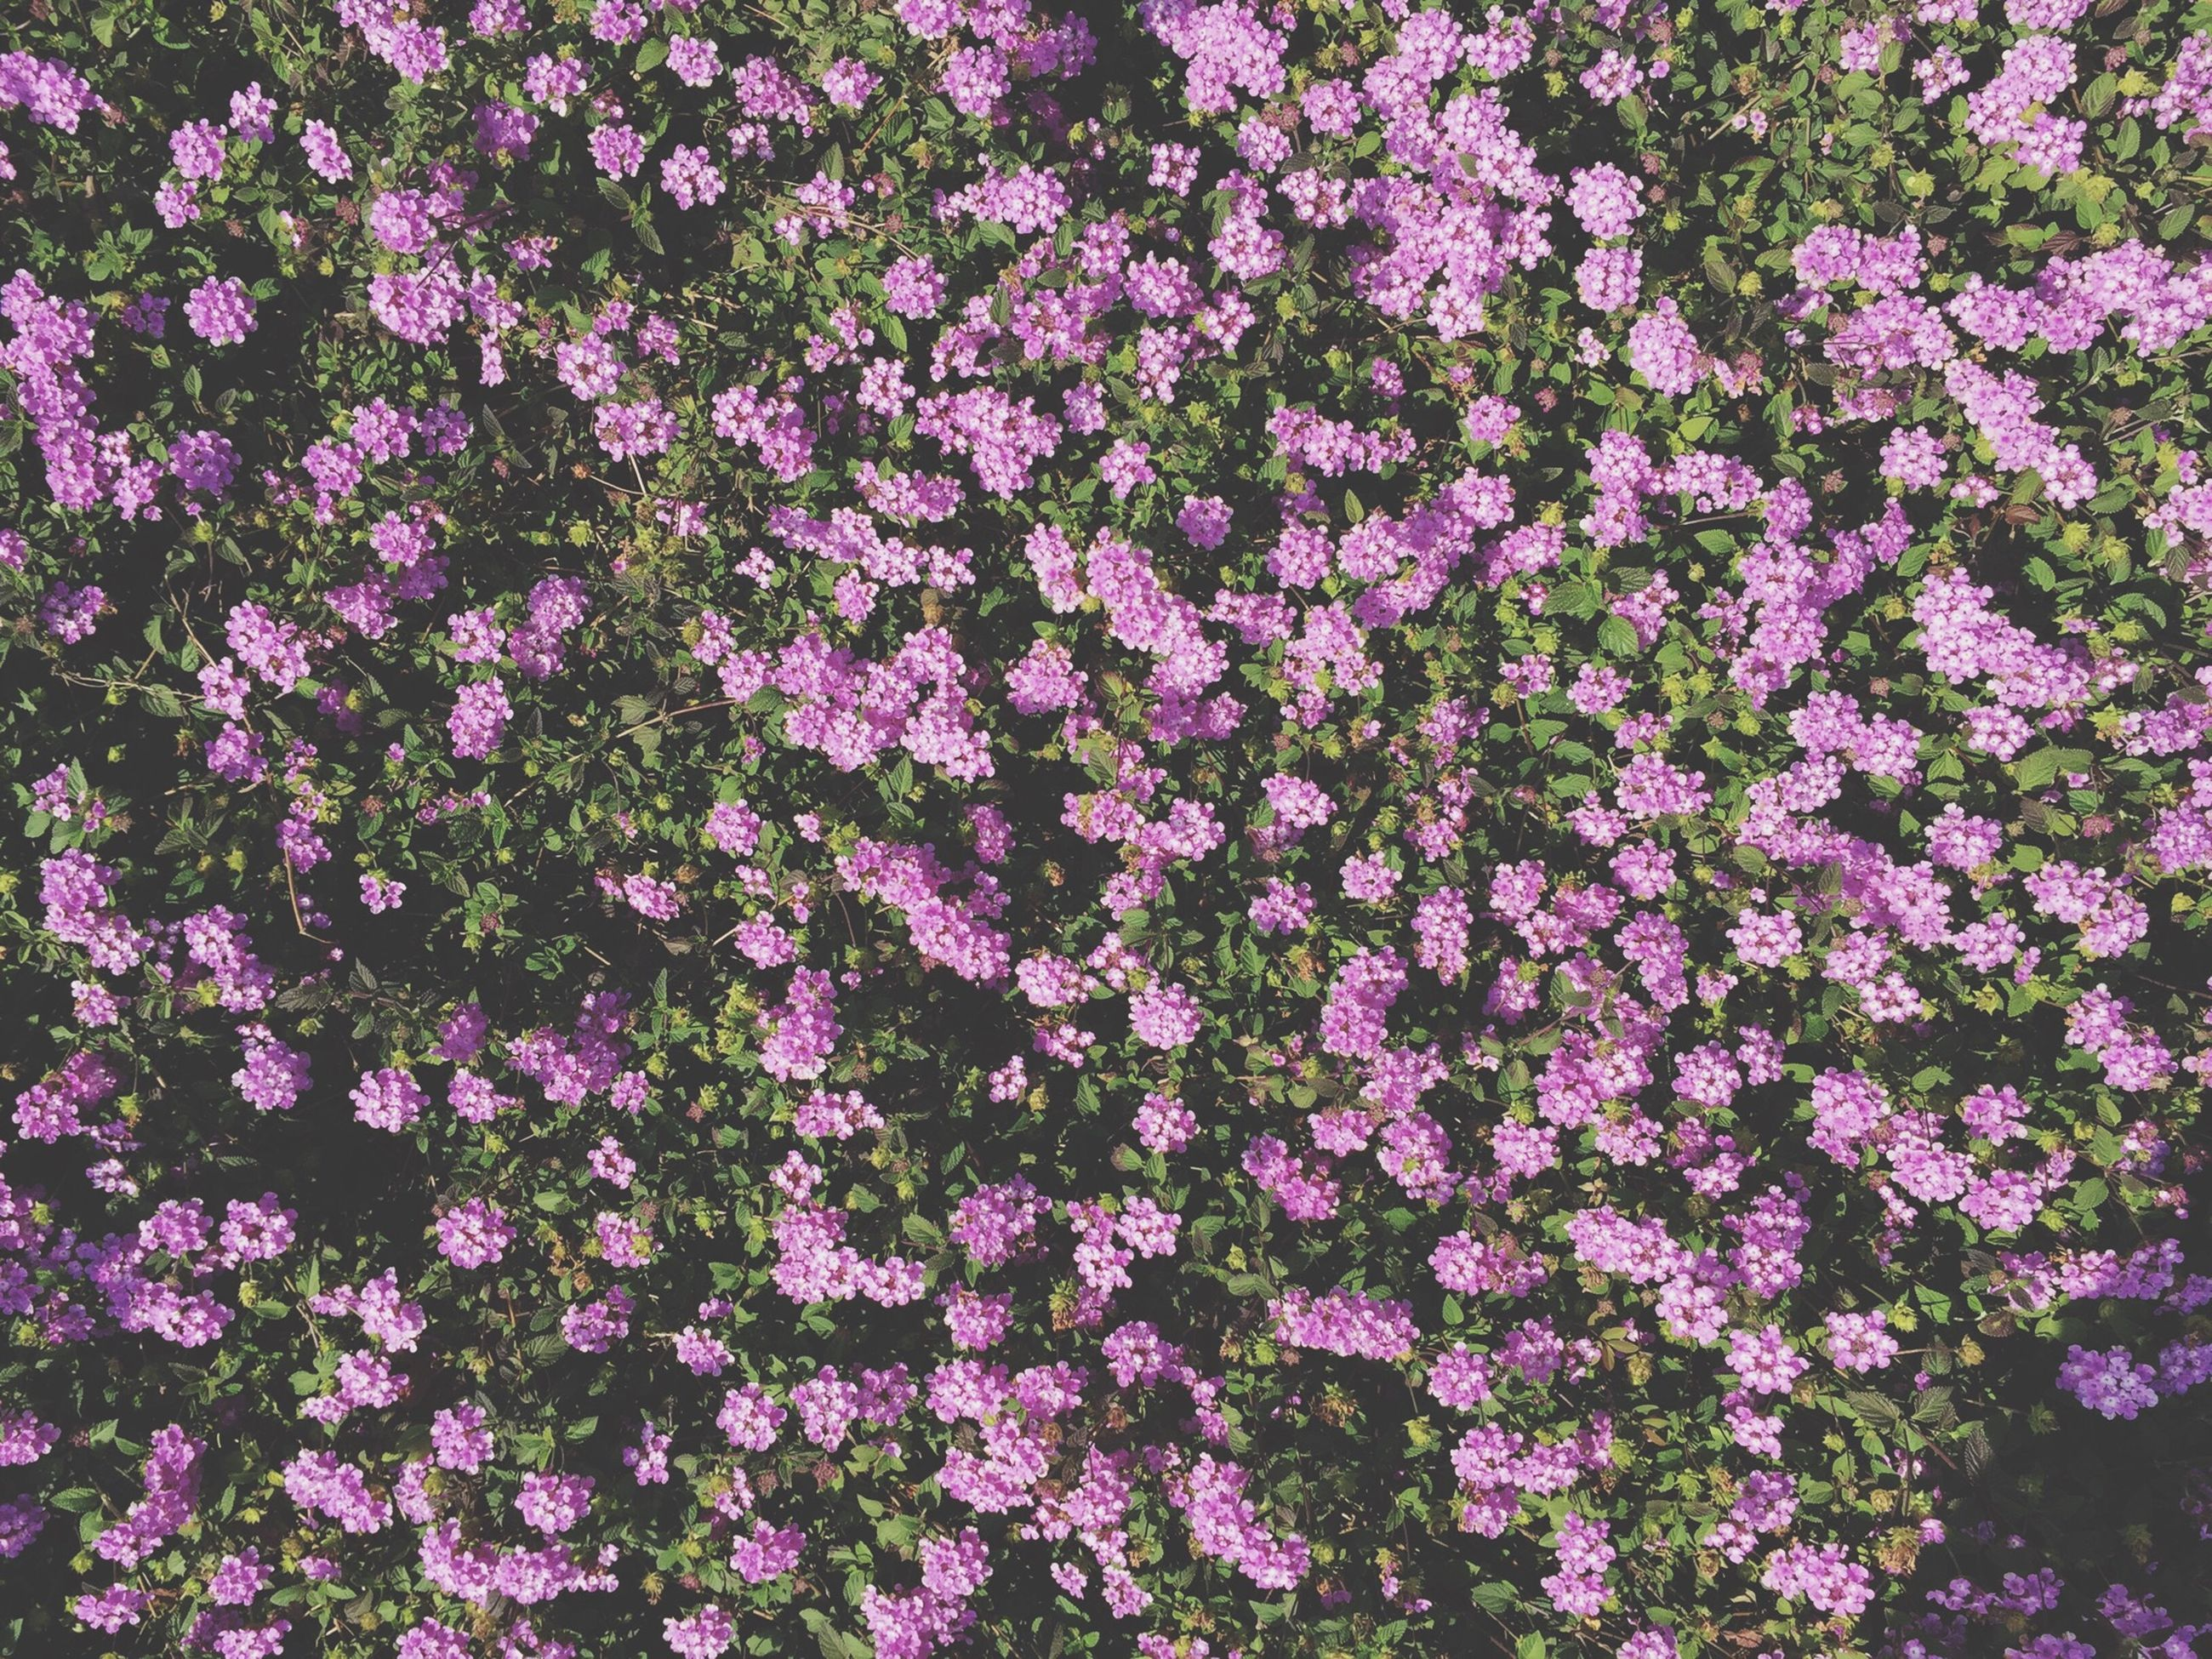 flower, growth, freshness, beauty in nature, fragility, nature, full frame, purple, petal, backgrounds, plant, blooming, pink color, abundance, high angle view, park - man made space, in bloom, outdoors, no people, field